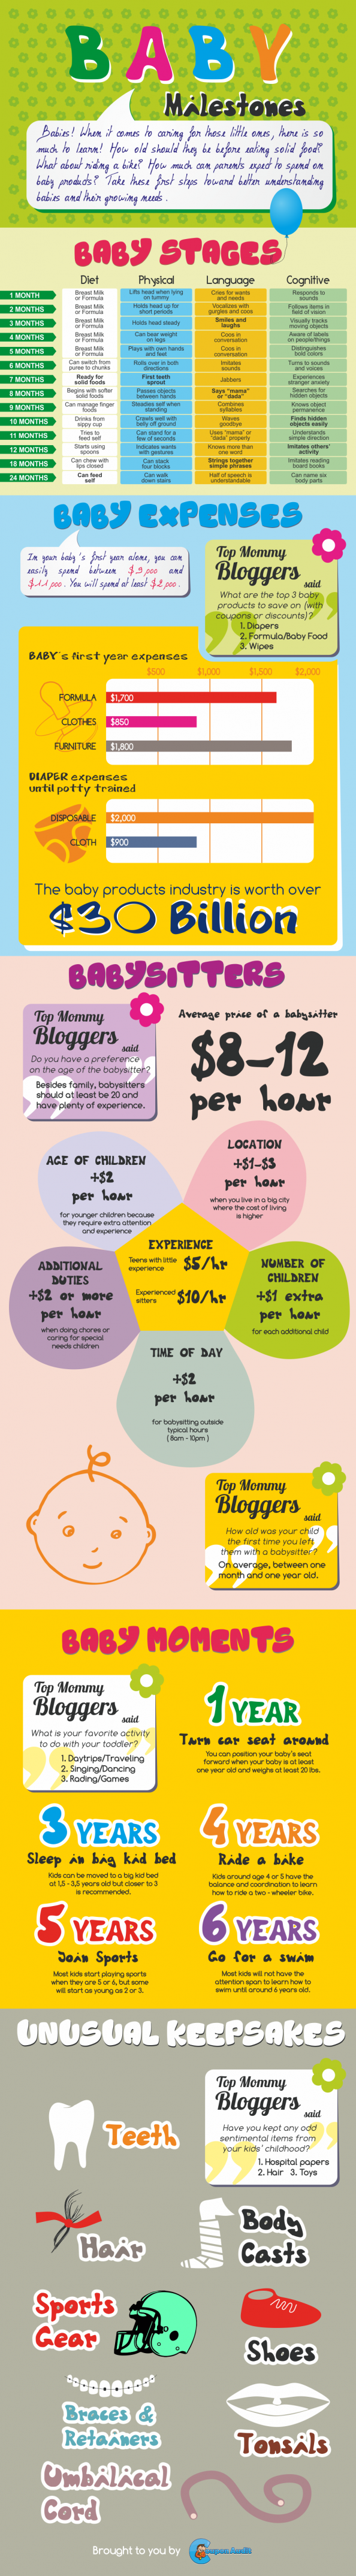 Baby Milestones Infographic